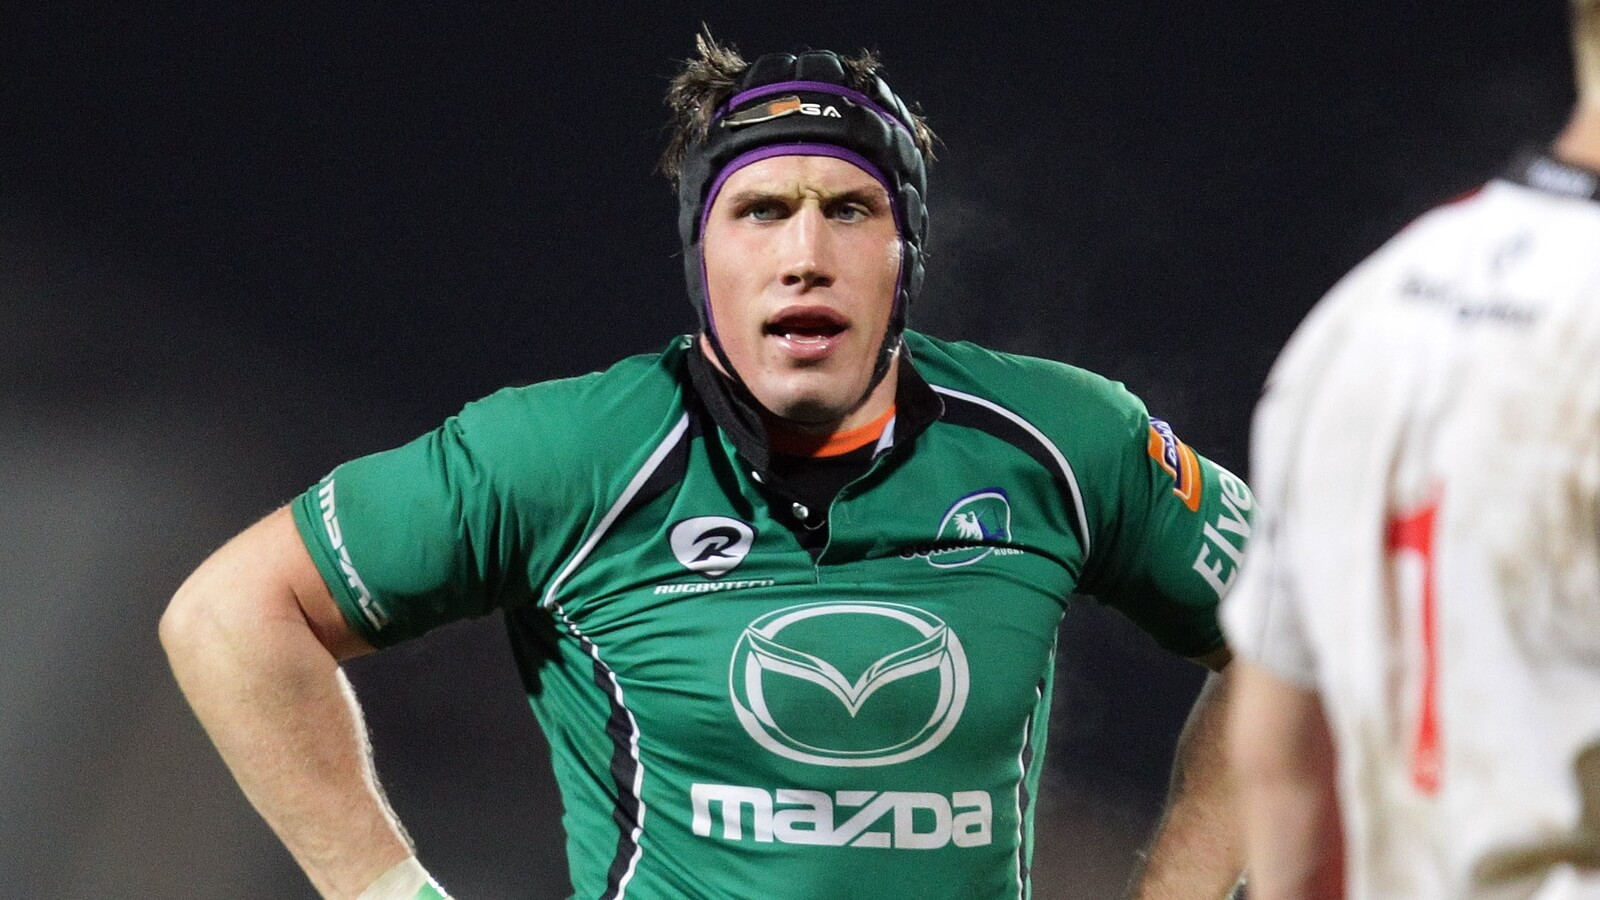 Eoghan Grace Pro Rugby